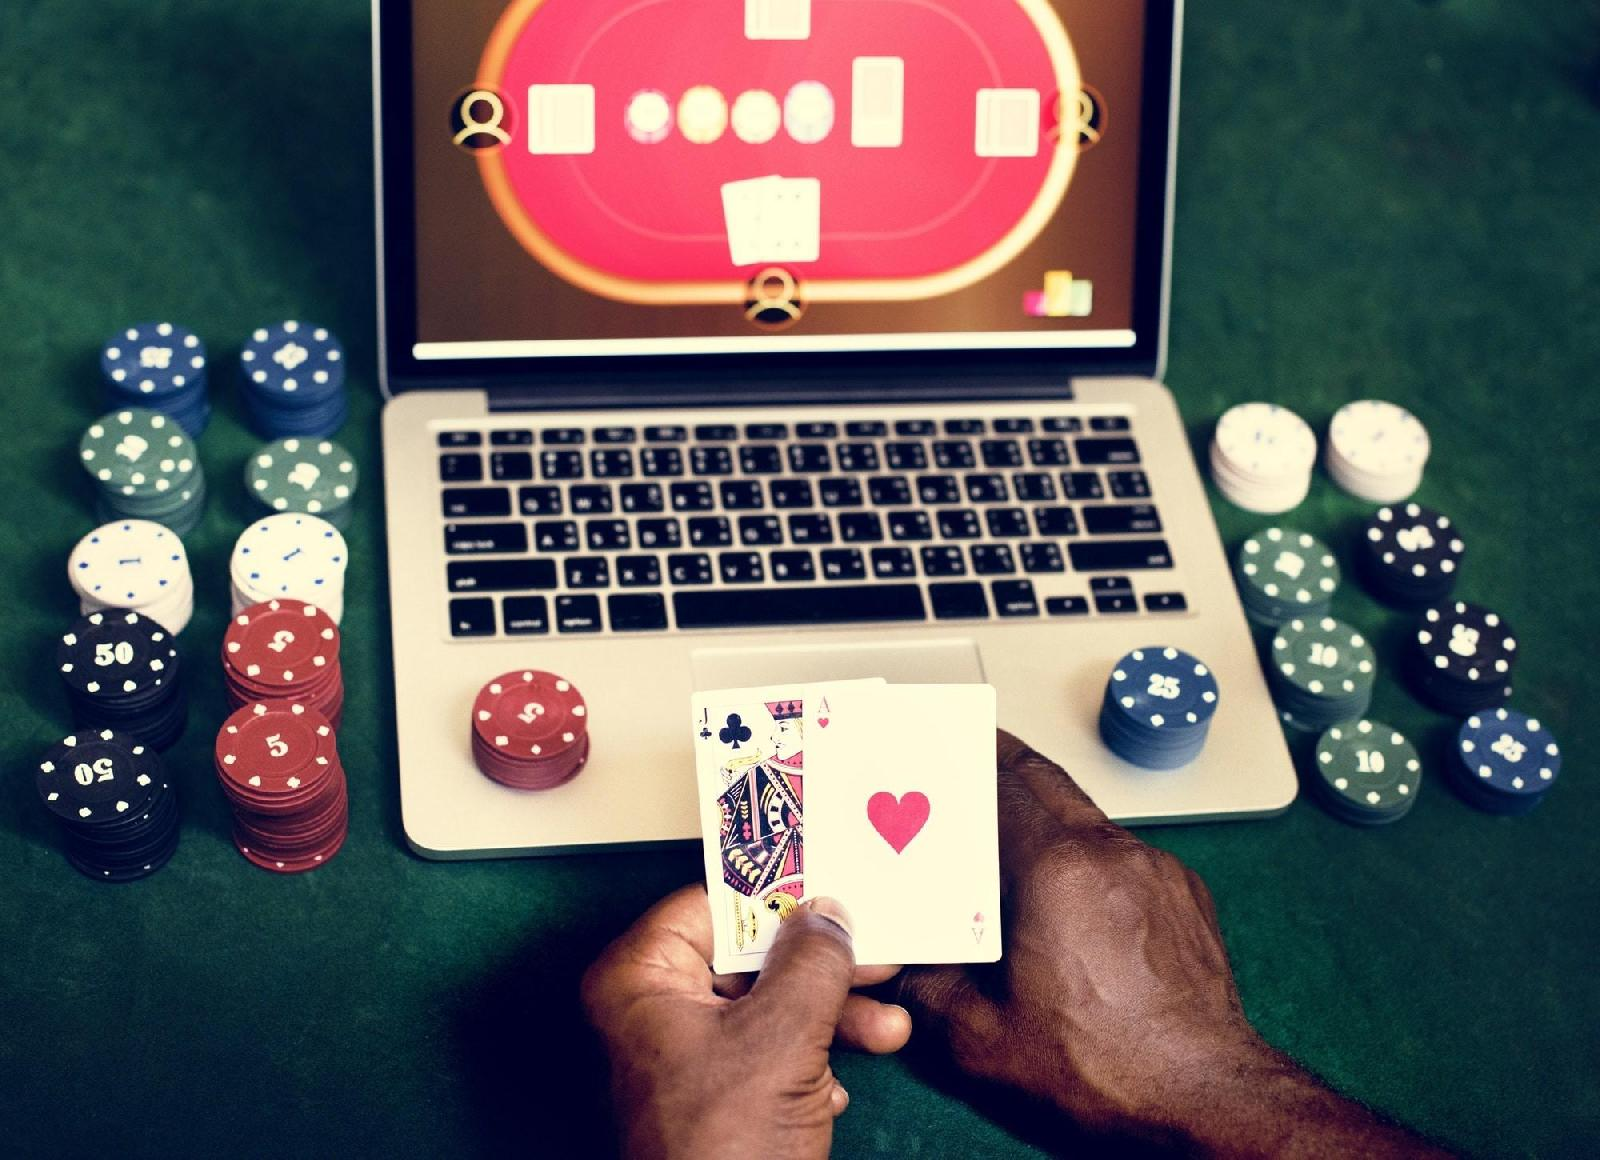 Poker online legale Iwager 146025